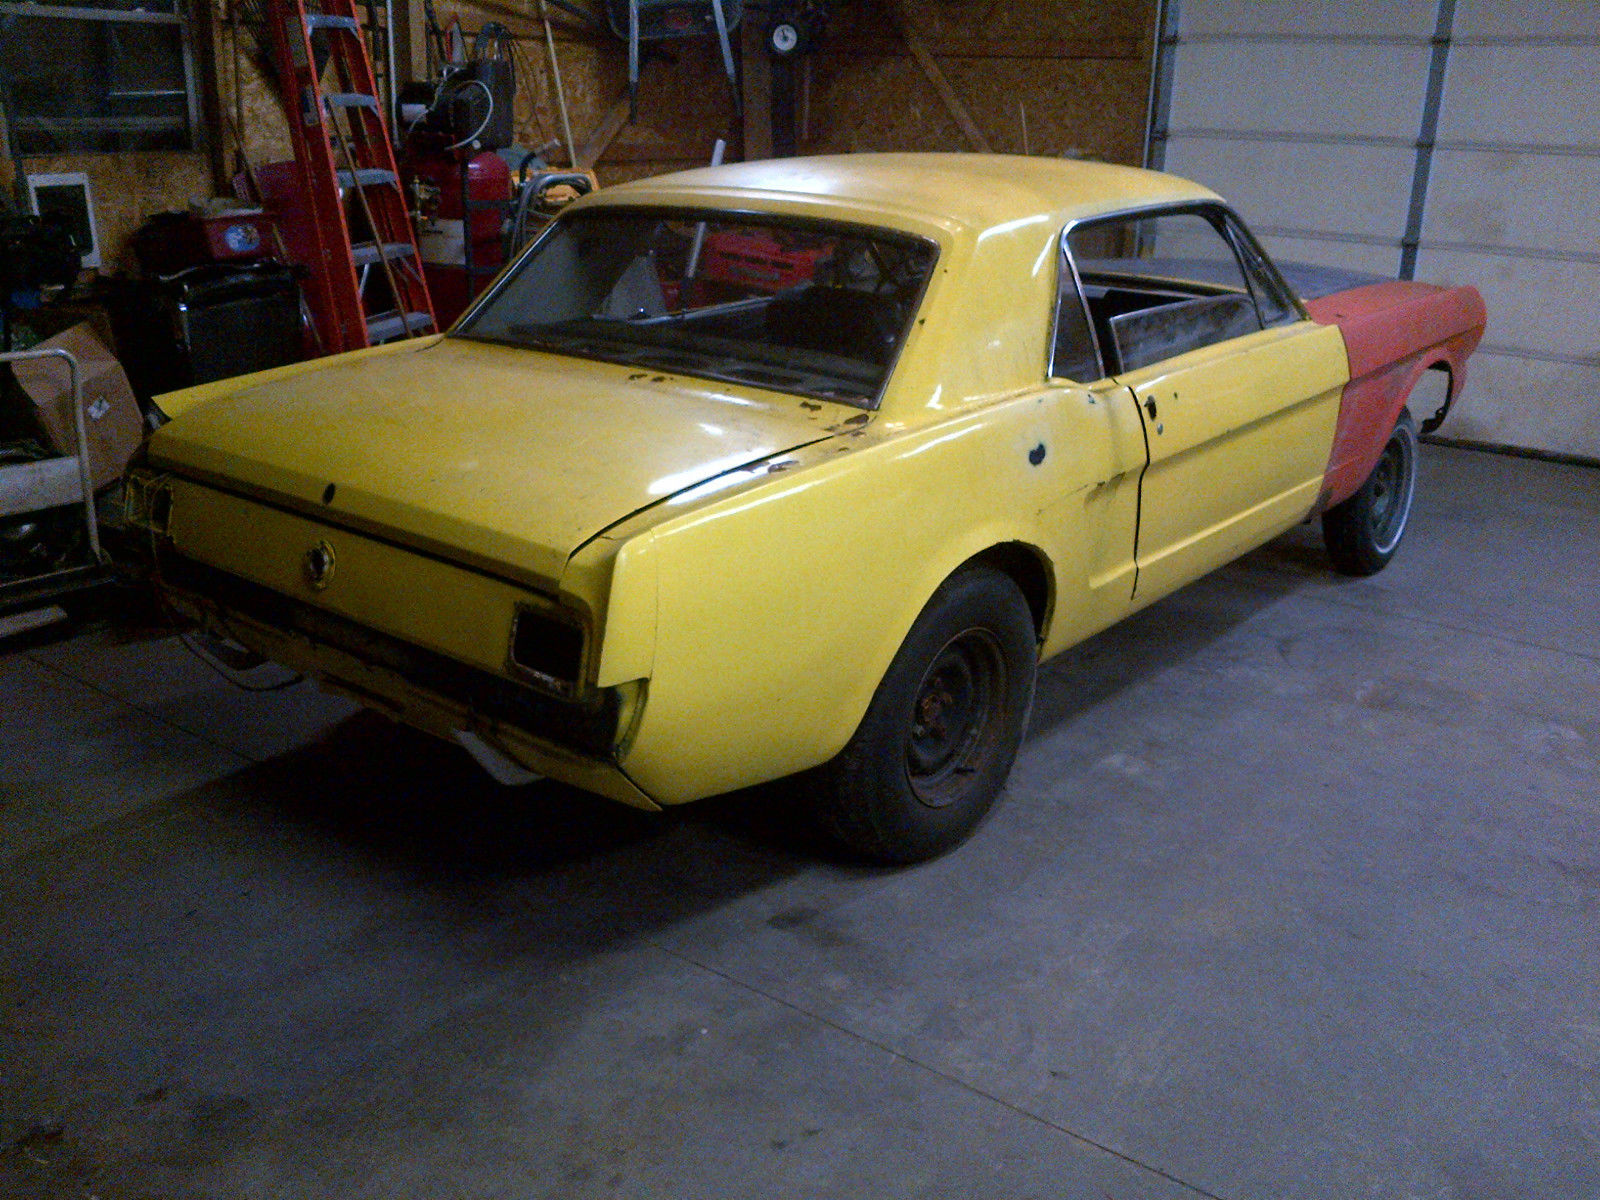 Mustang Parts For Sale >> 1965 Ford Mustang Parts Or Project Car Classic Ford